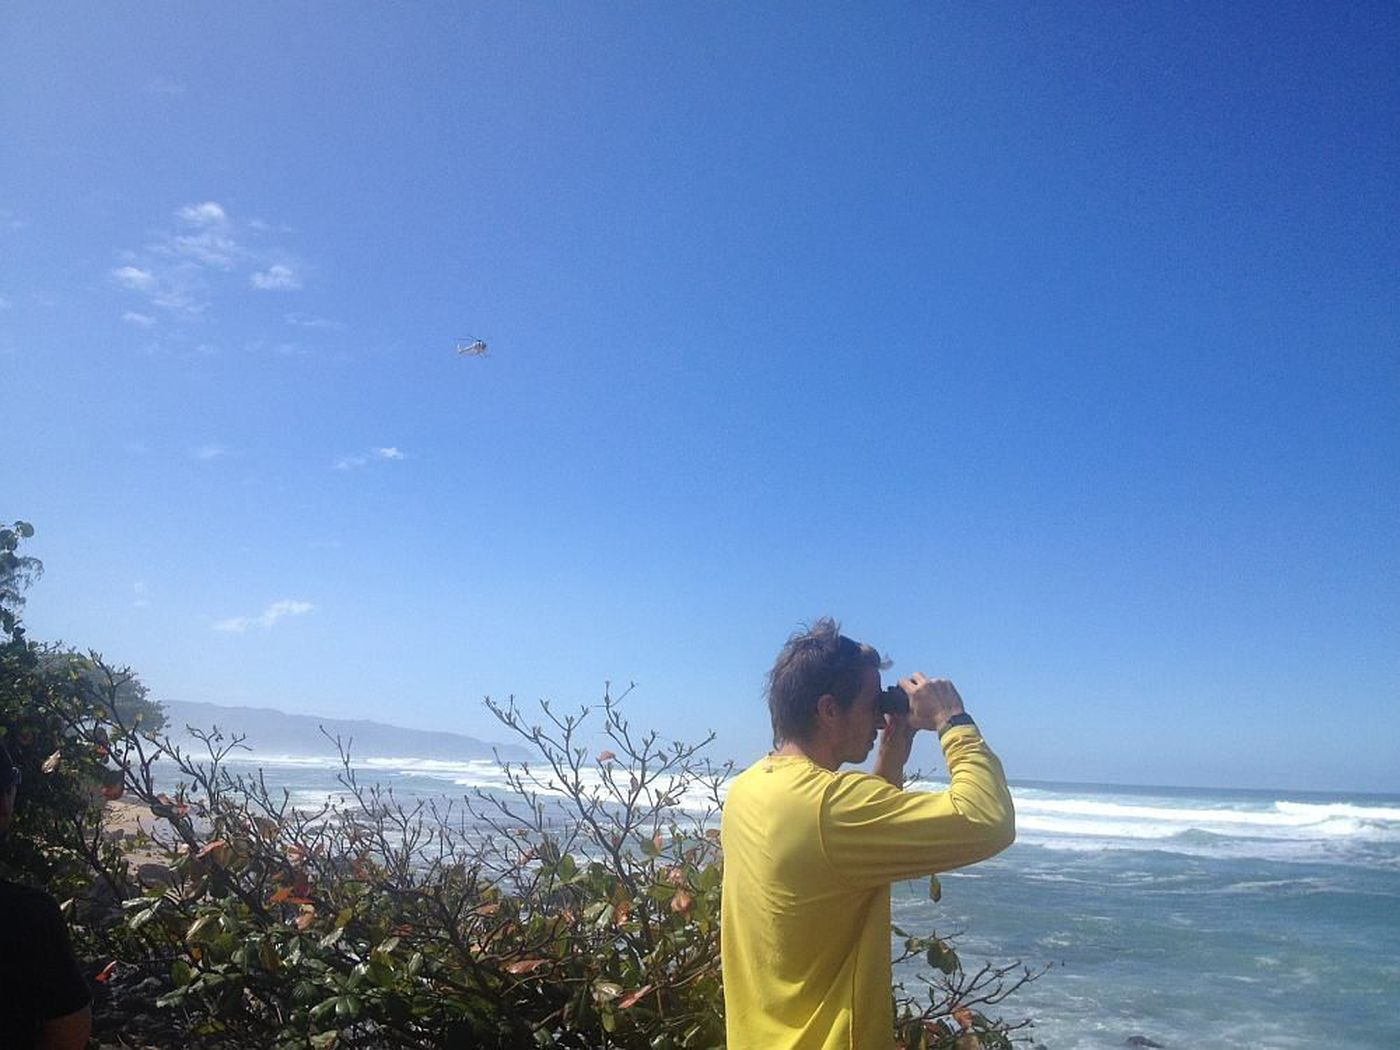 f18978b23f Search continues for missing surfer on Oahu s North Shore